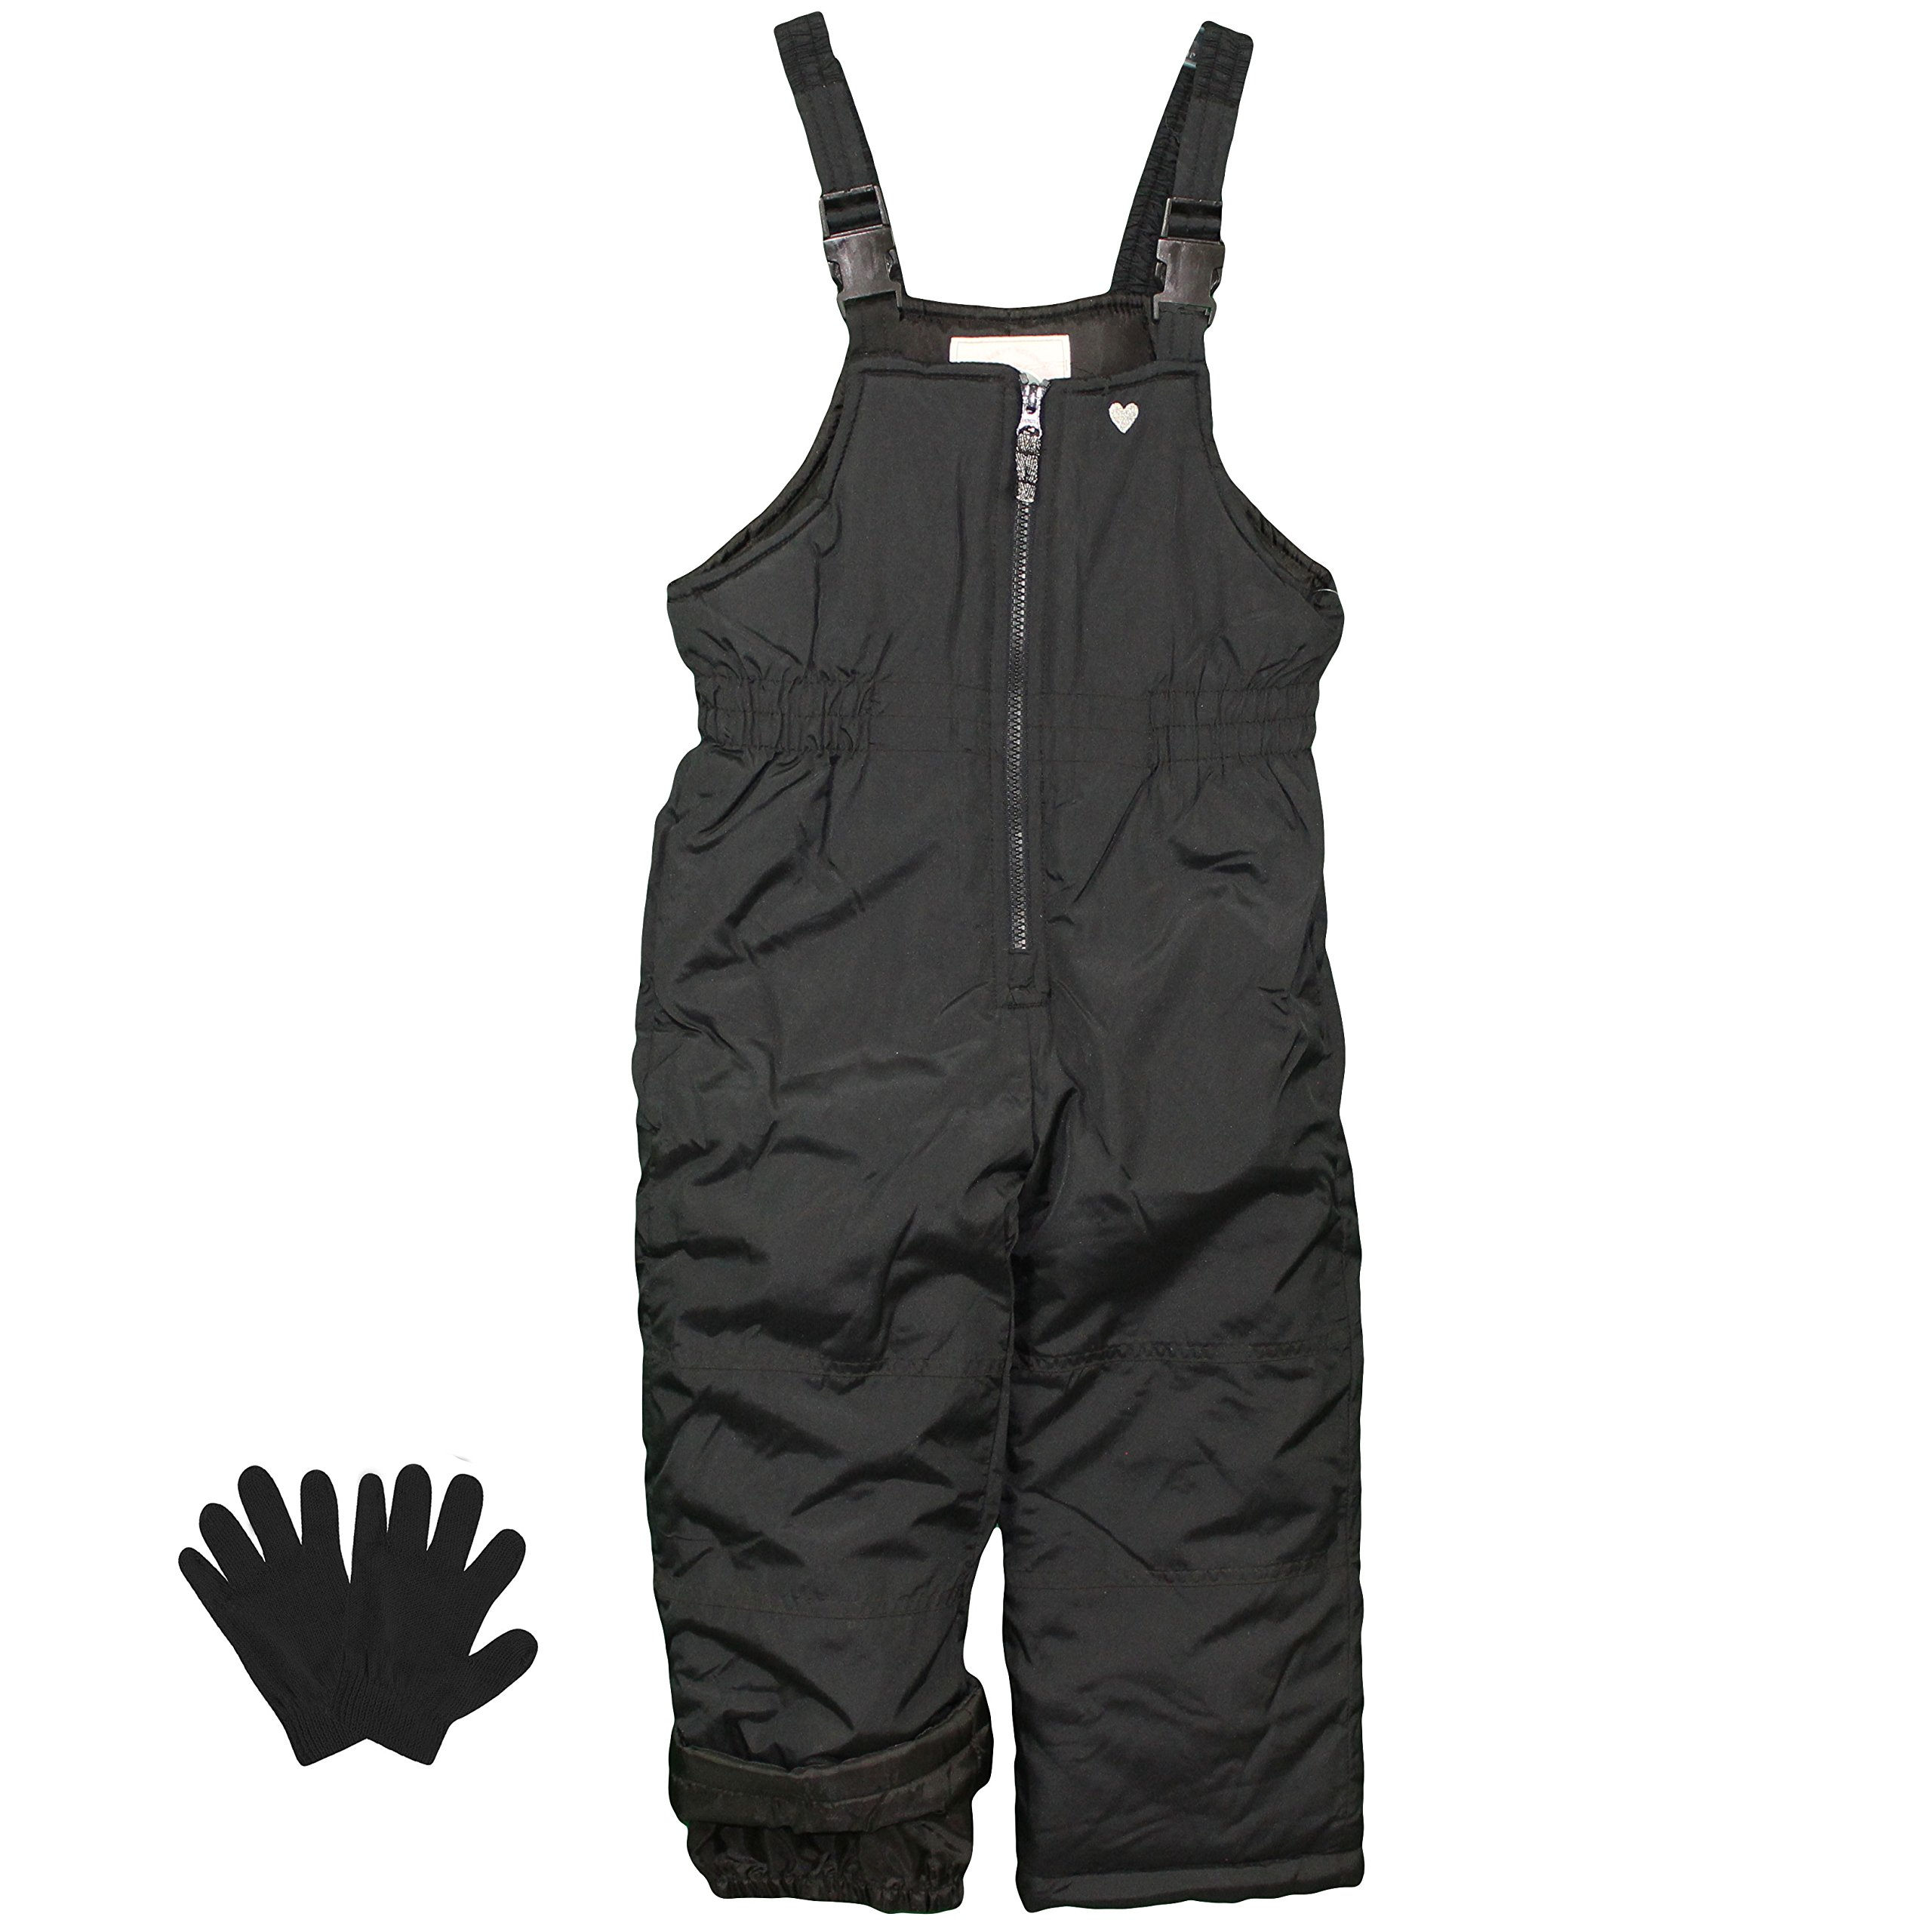 Carter's Snow Pants Little Girls Heavy Weight Snow Bibs and Gloves - Black - 4